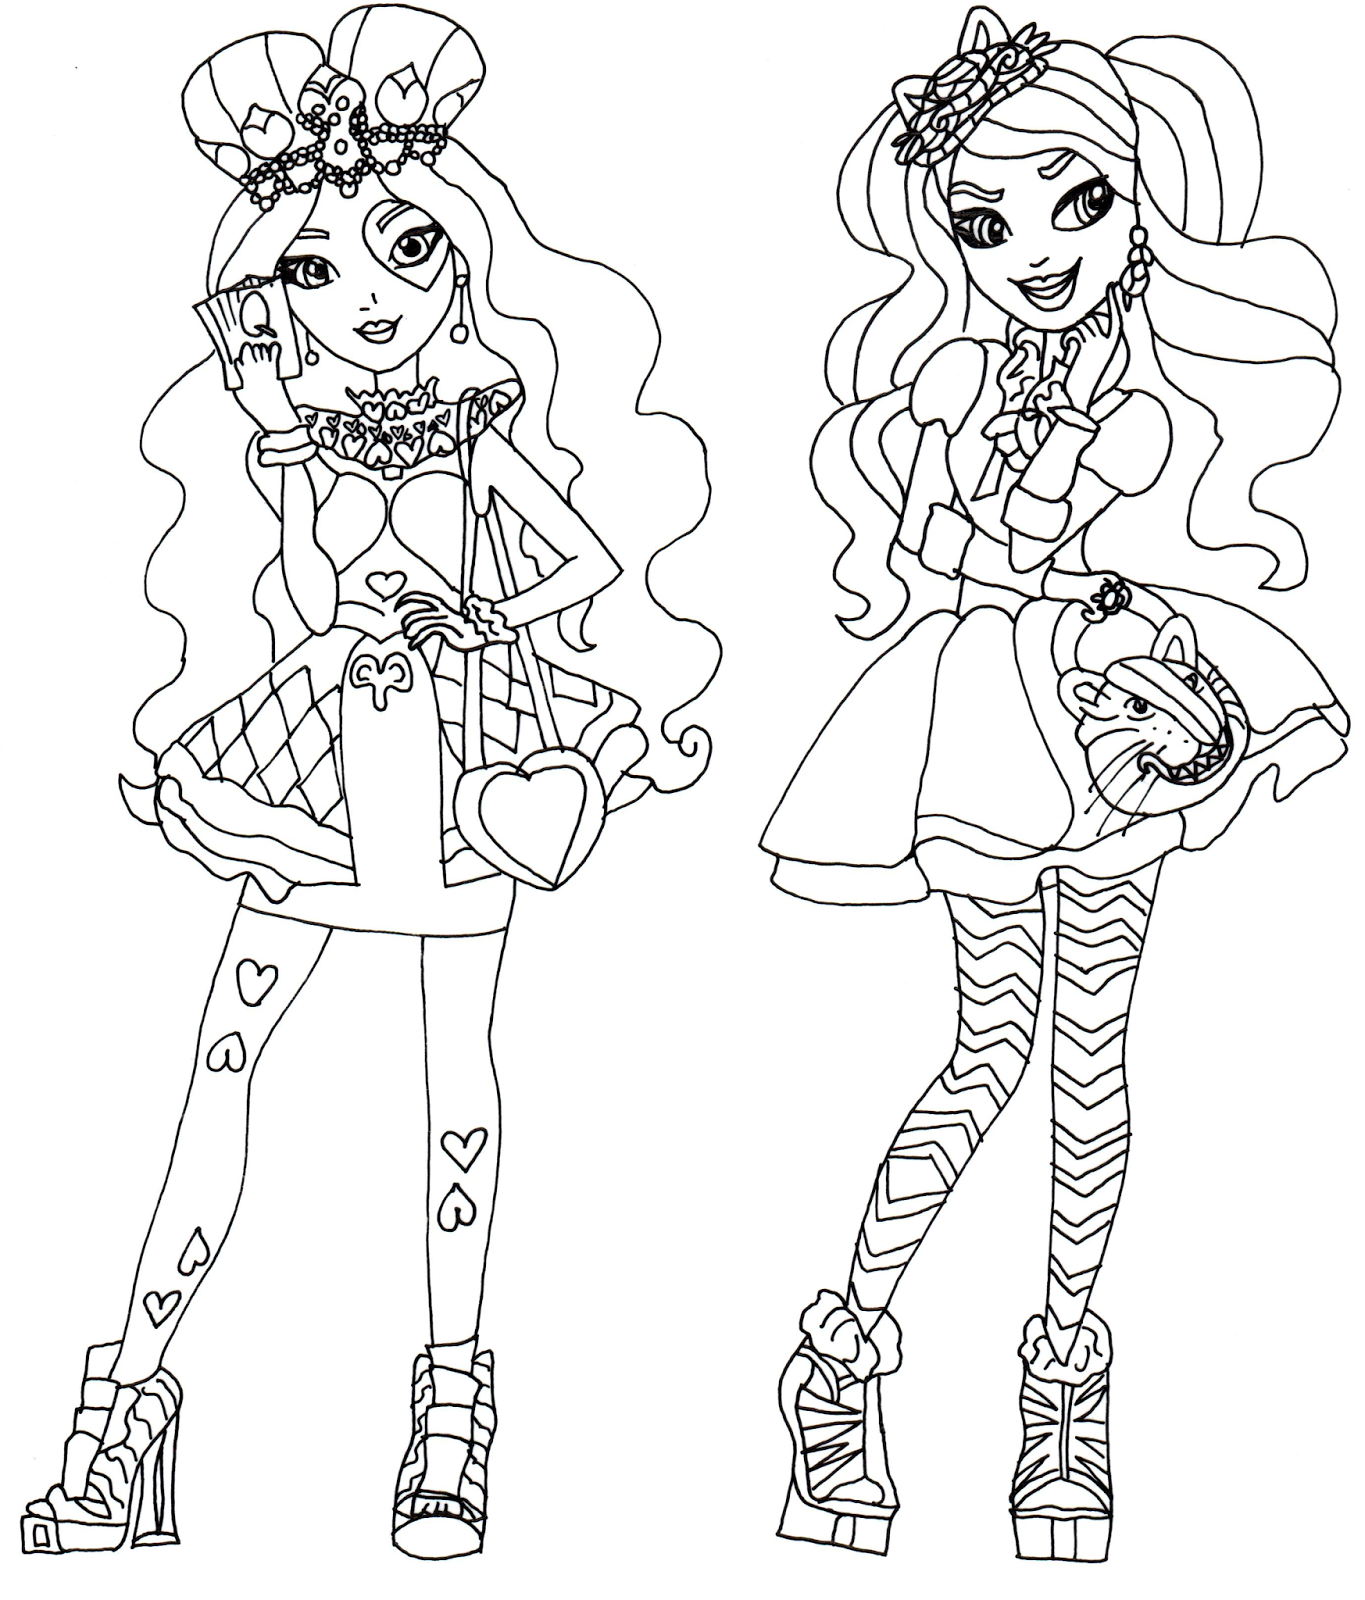 Printable coloring pages ever after high - Free Printable Ever After High Coloring Page For Lizzie Hearts And Kitty Cheshire